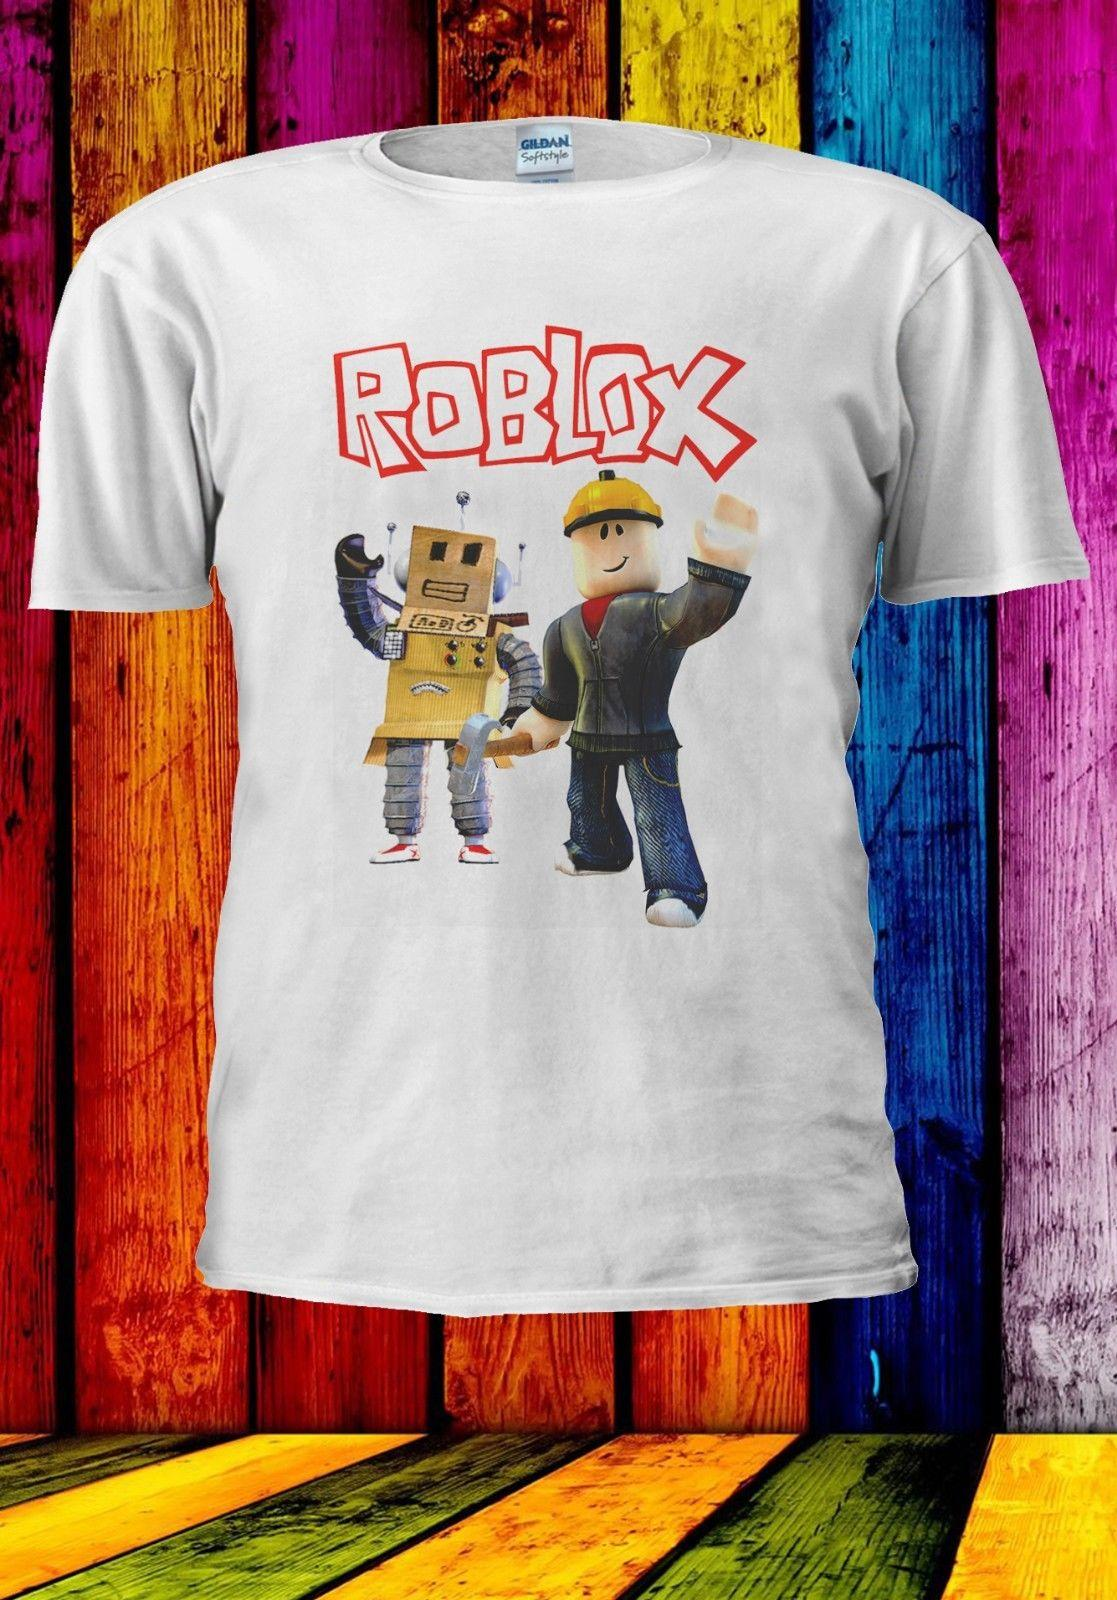 124f691ee Roblox Builderman & Box Robot Online Game Men Women Unisex T Shirt 901  Funny Unisex Casual Gift Make Your Own Tee Shirt Design Crazy T Shirt  Design From ...